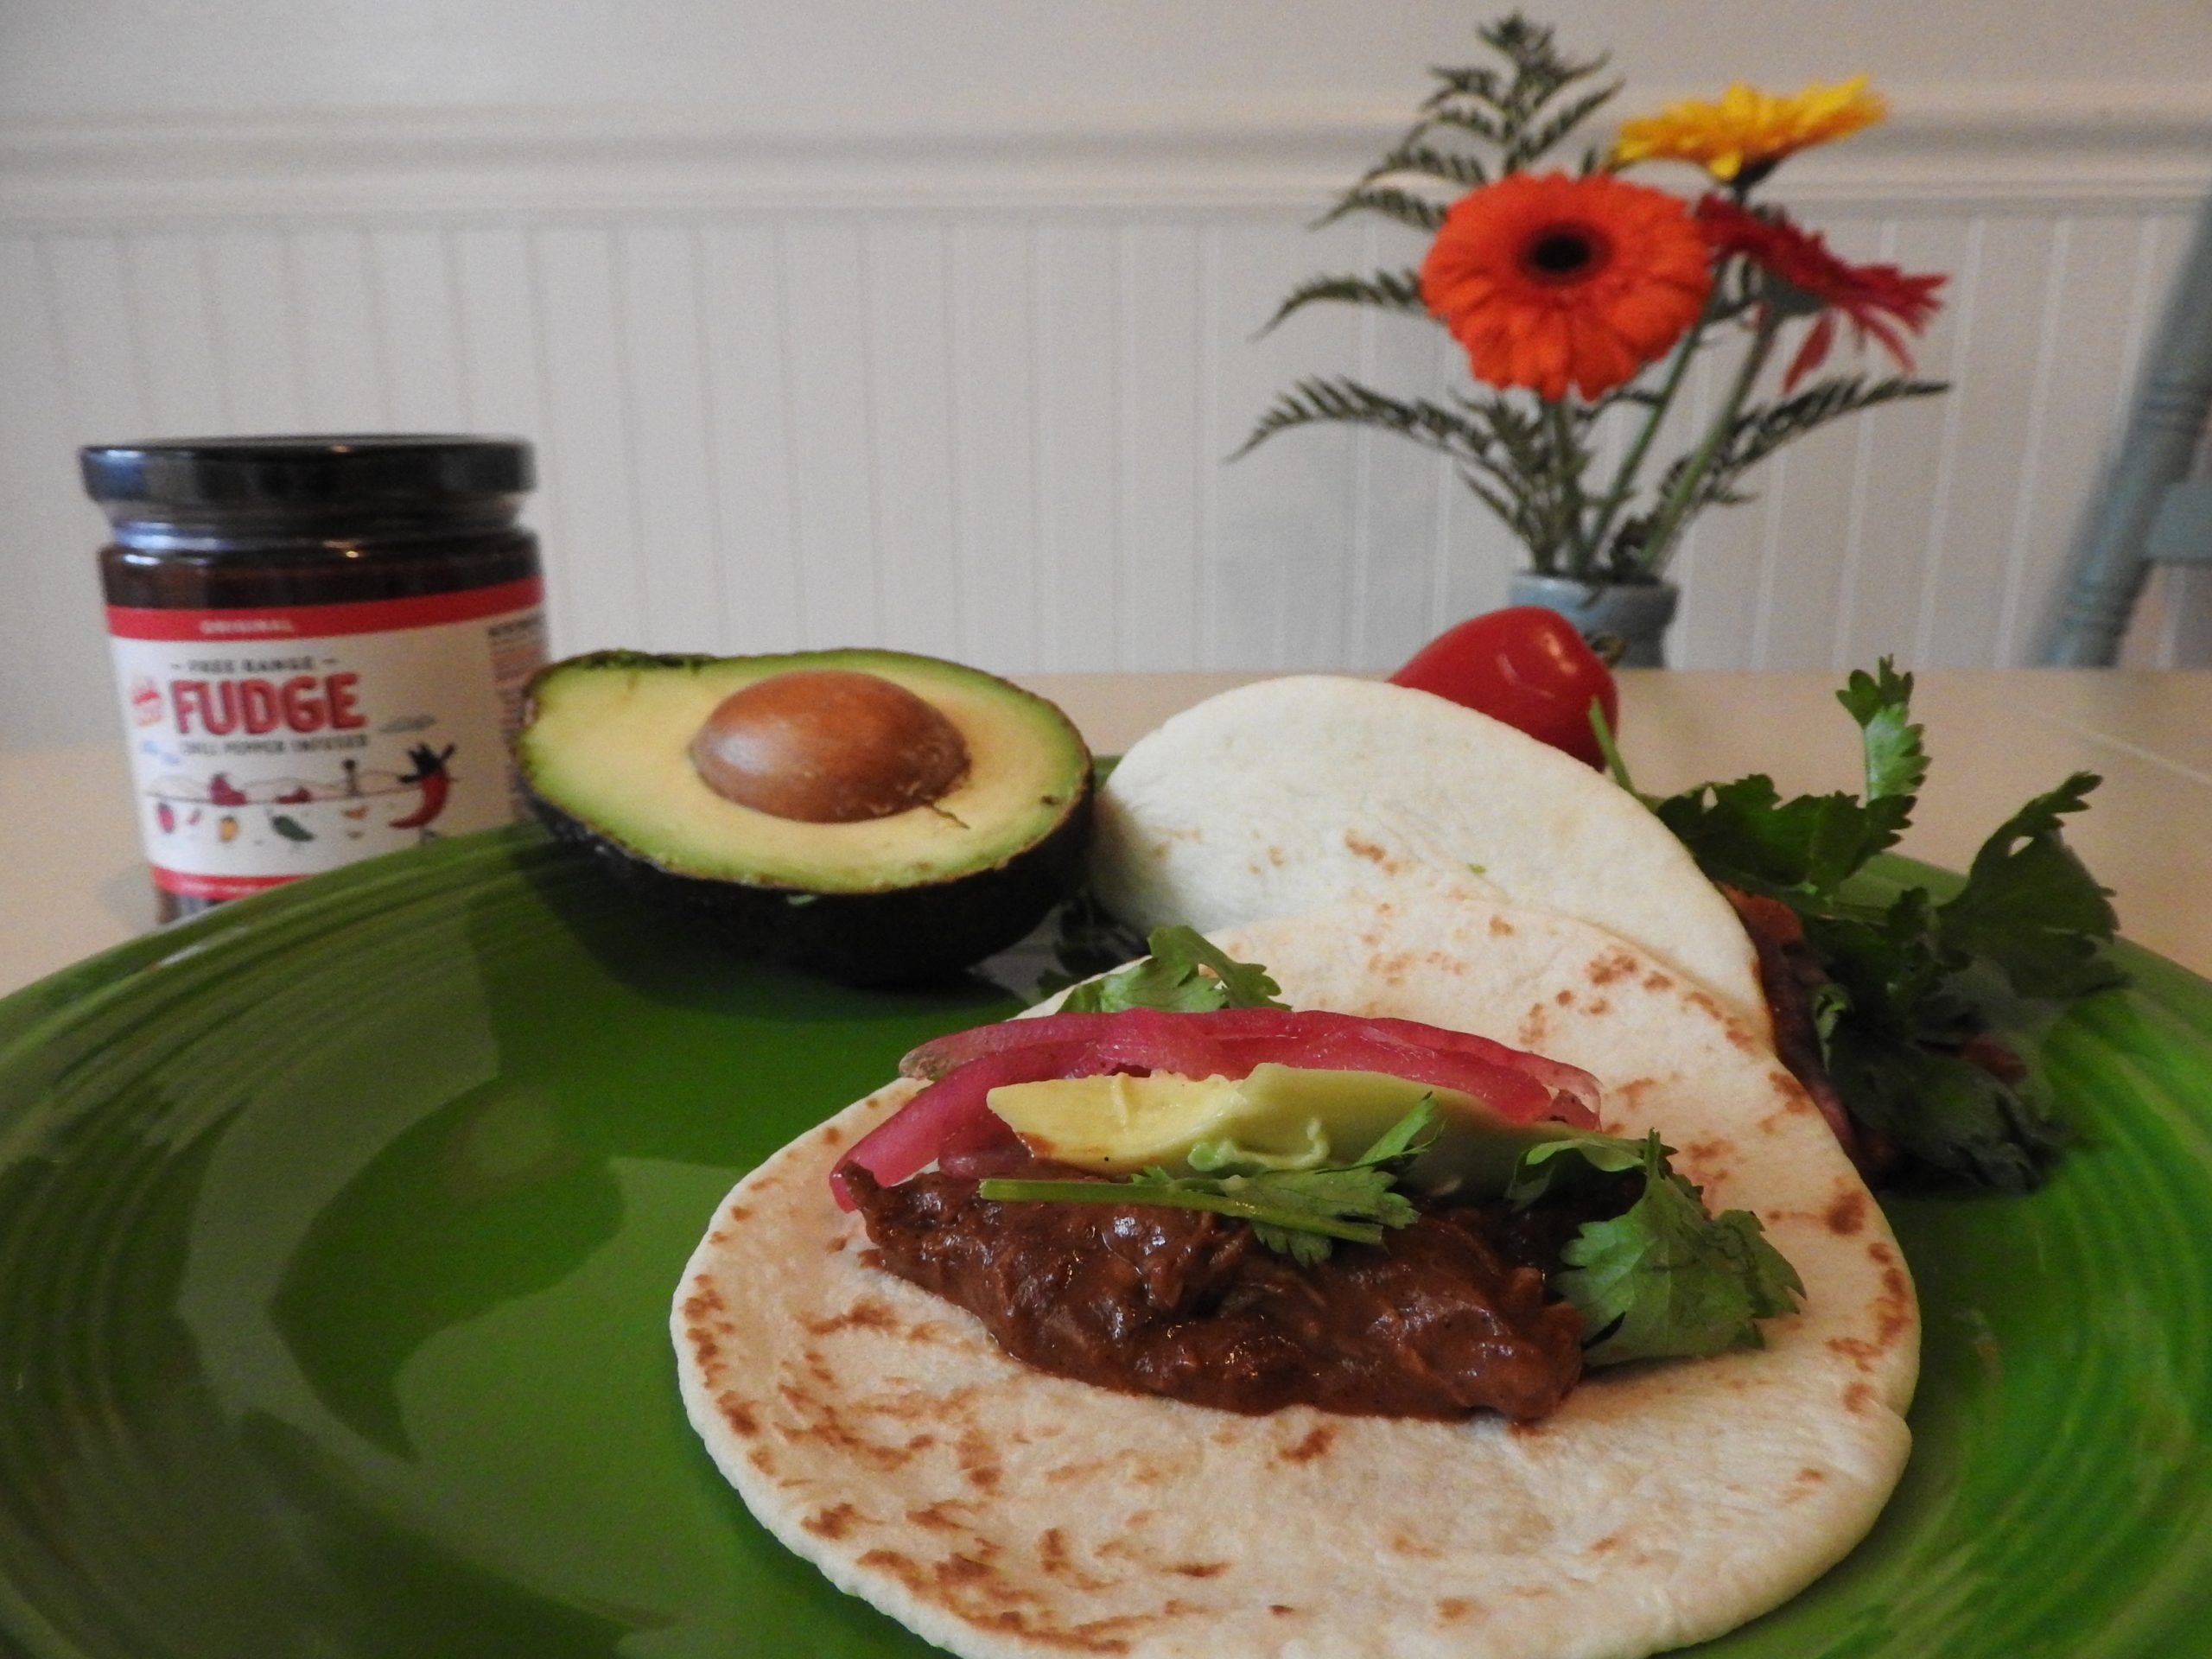 Decorative plate with sweet and spicy mole tacos for dinner. A jar of spicy hot fudge and flowers the back ground.